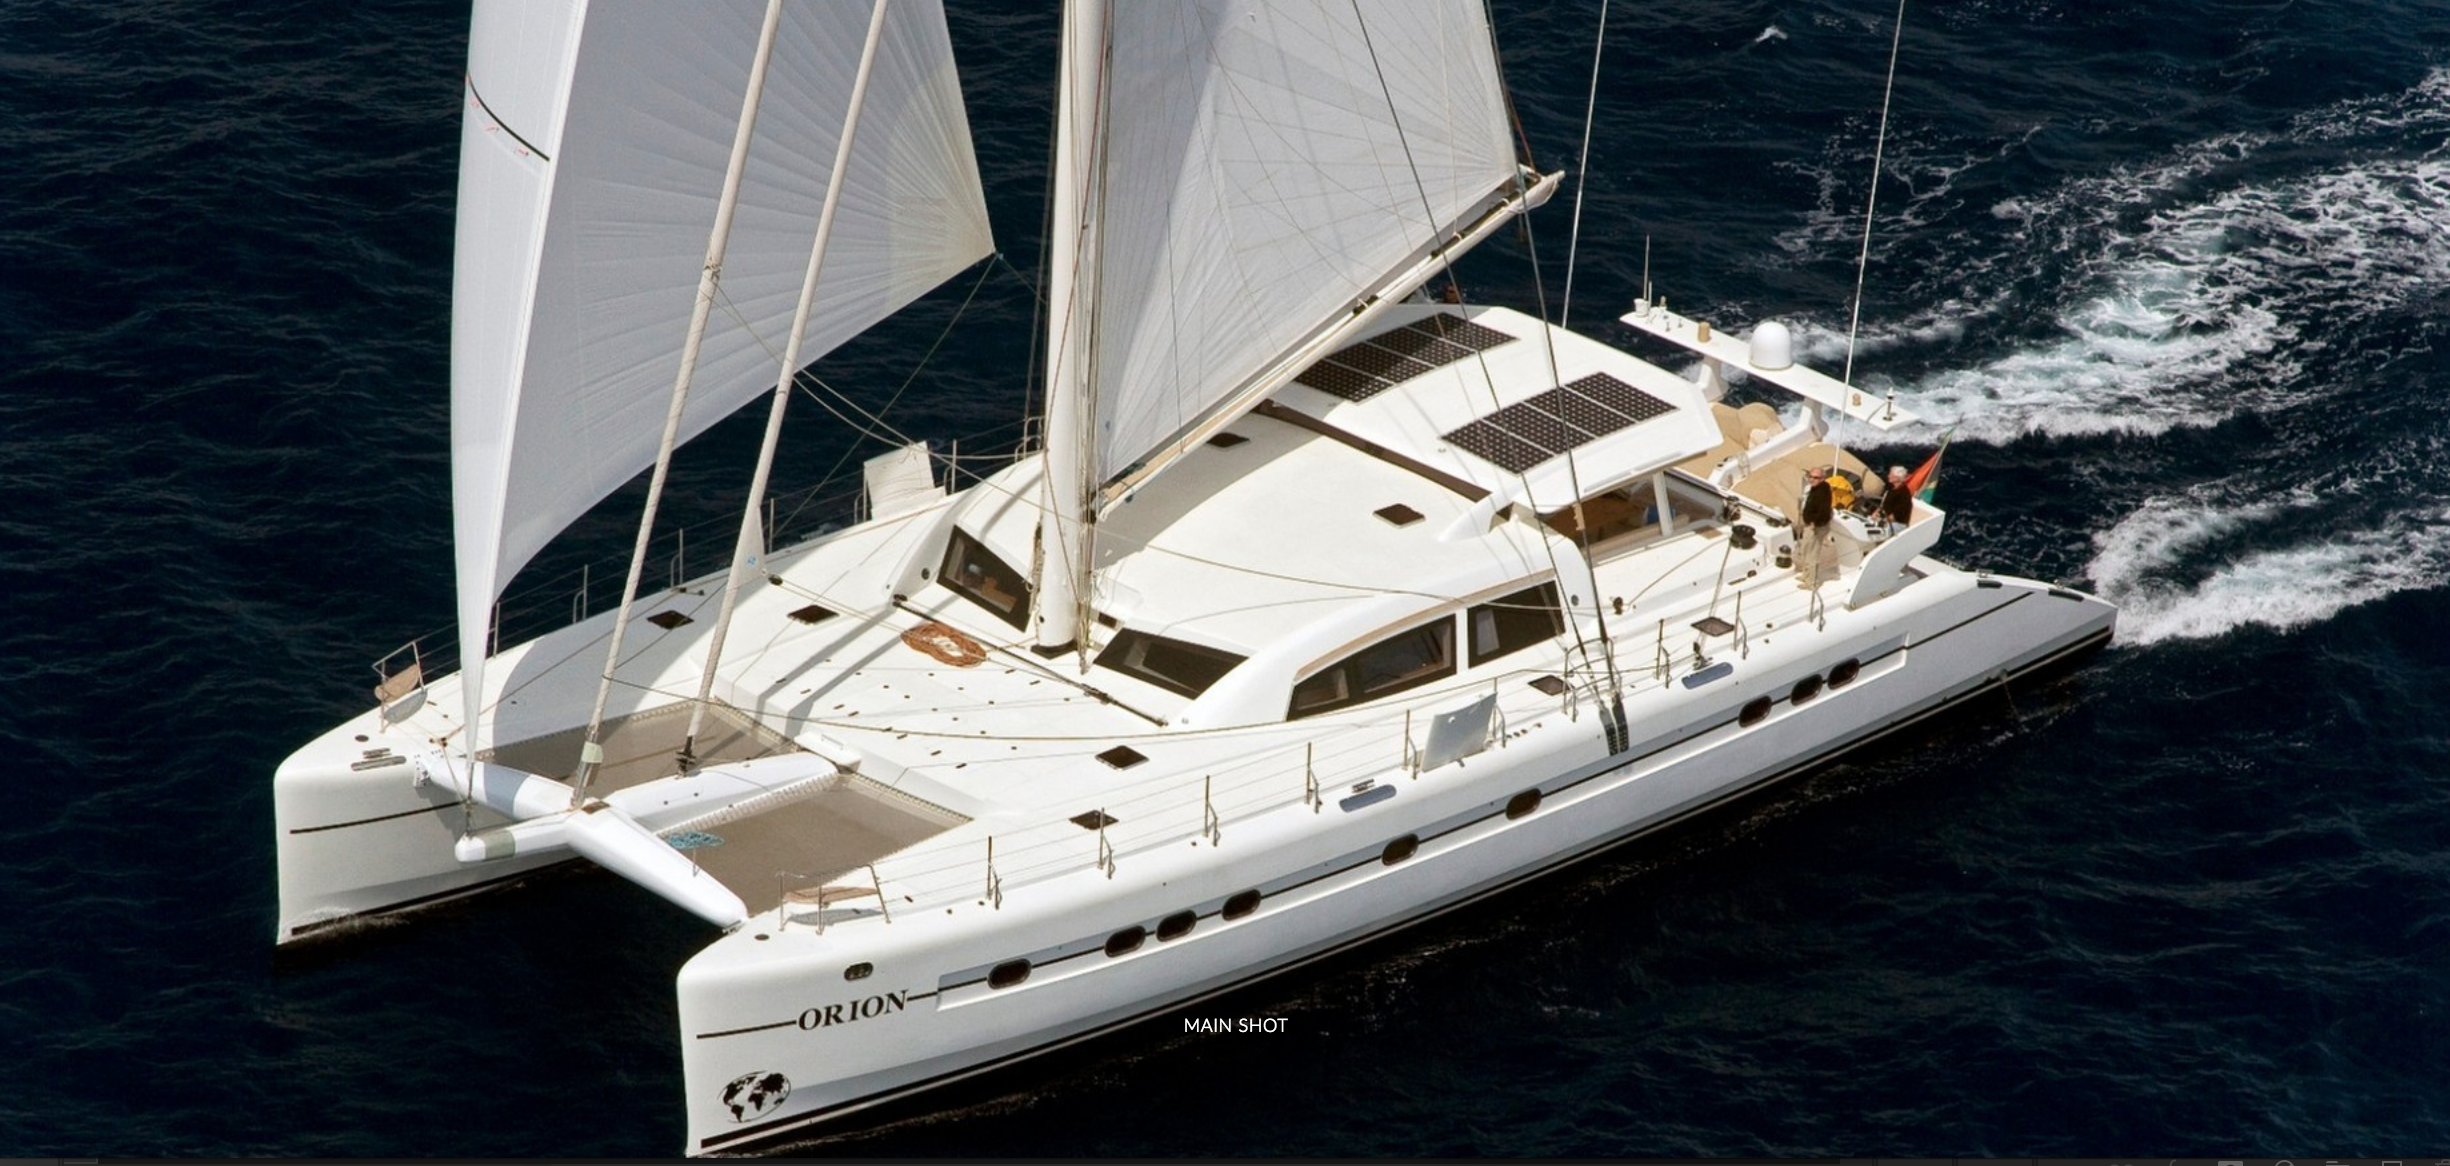 Main shot of 90ft sailing yacht ORION